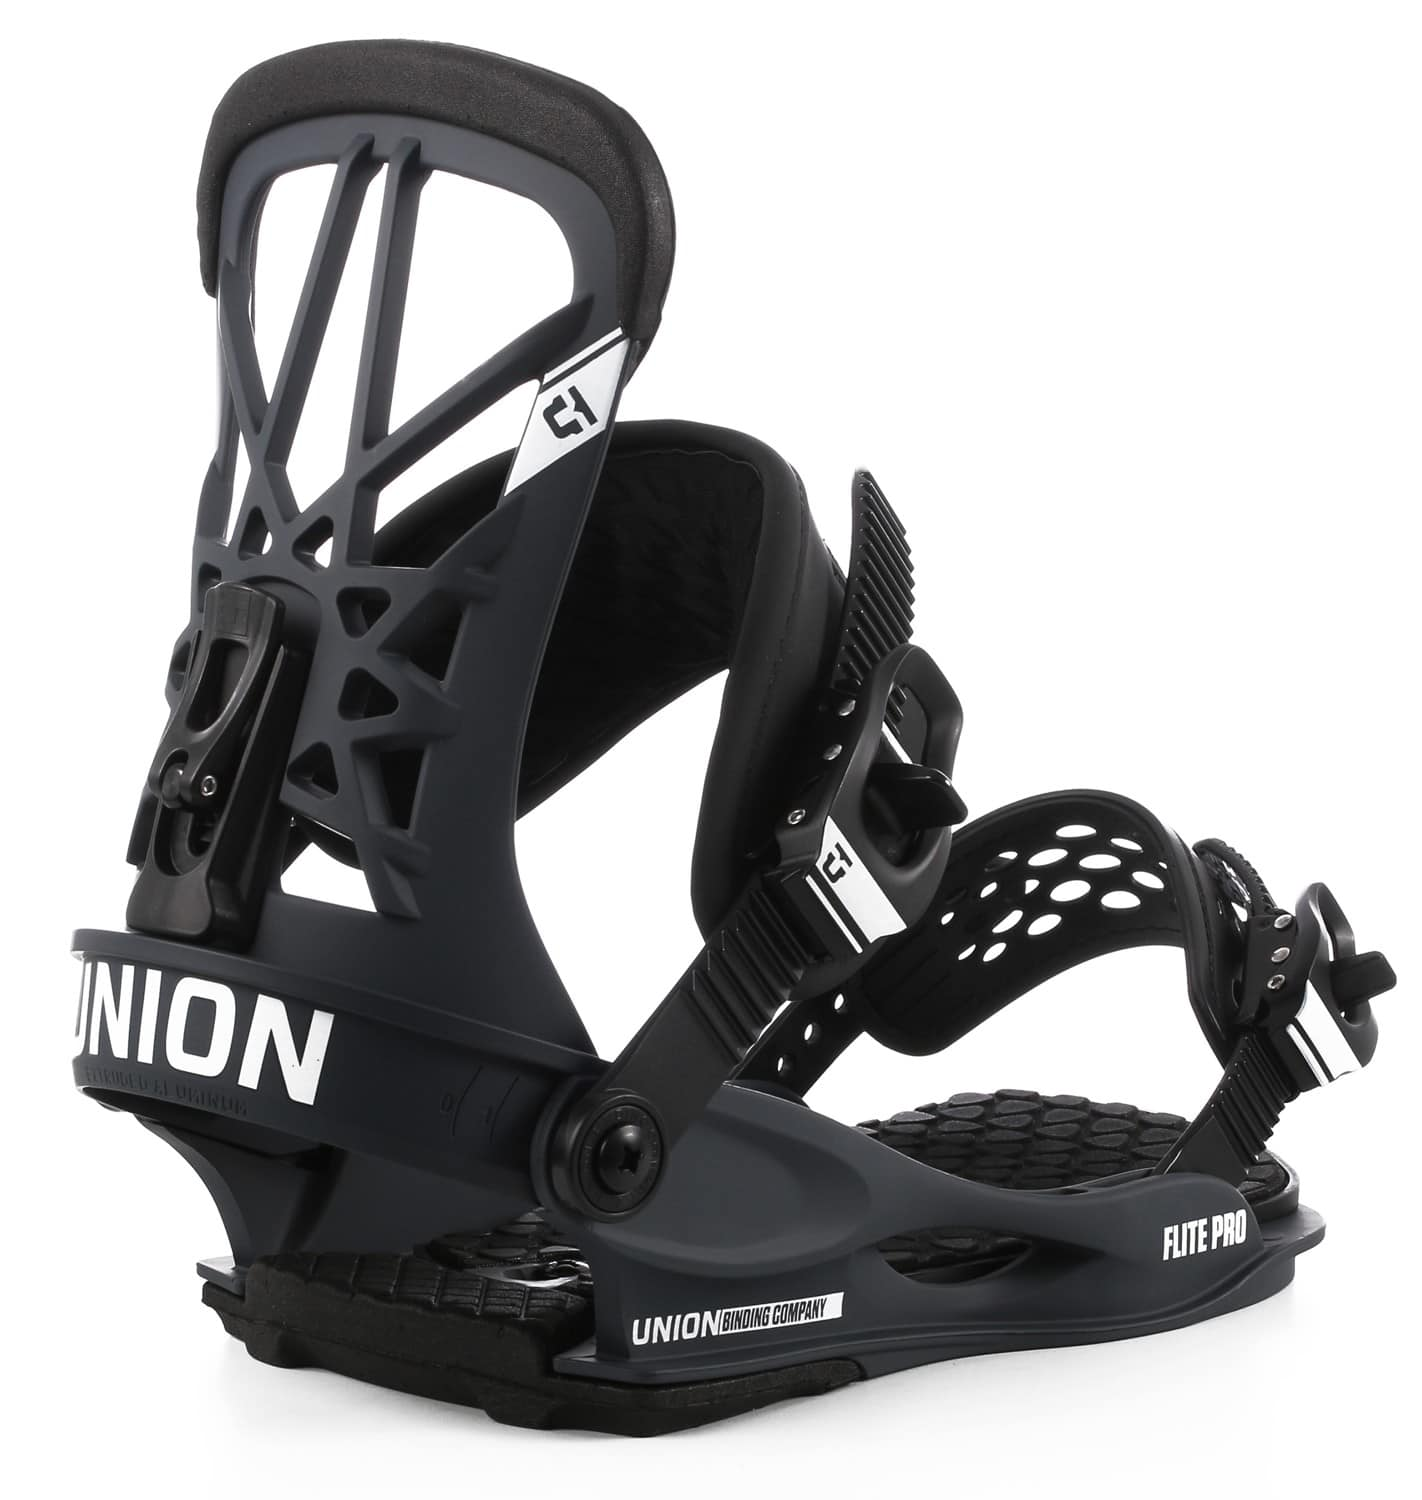 Union Flite Pro Snowboard Bindings 2017